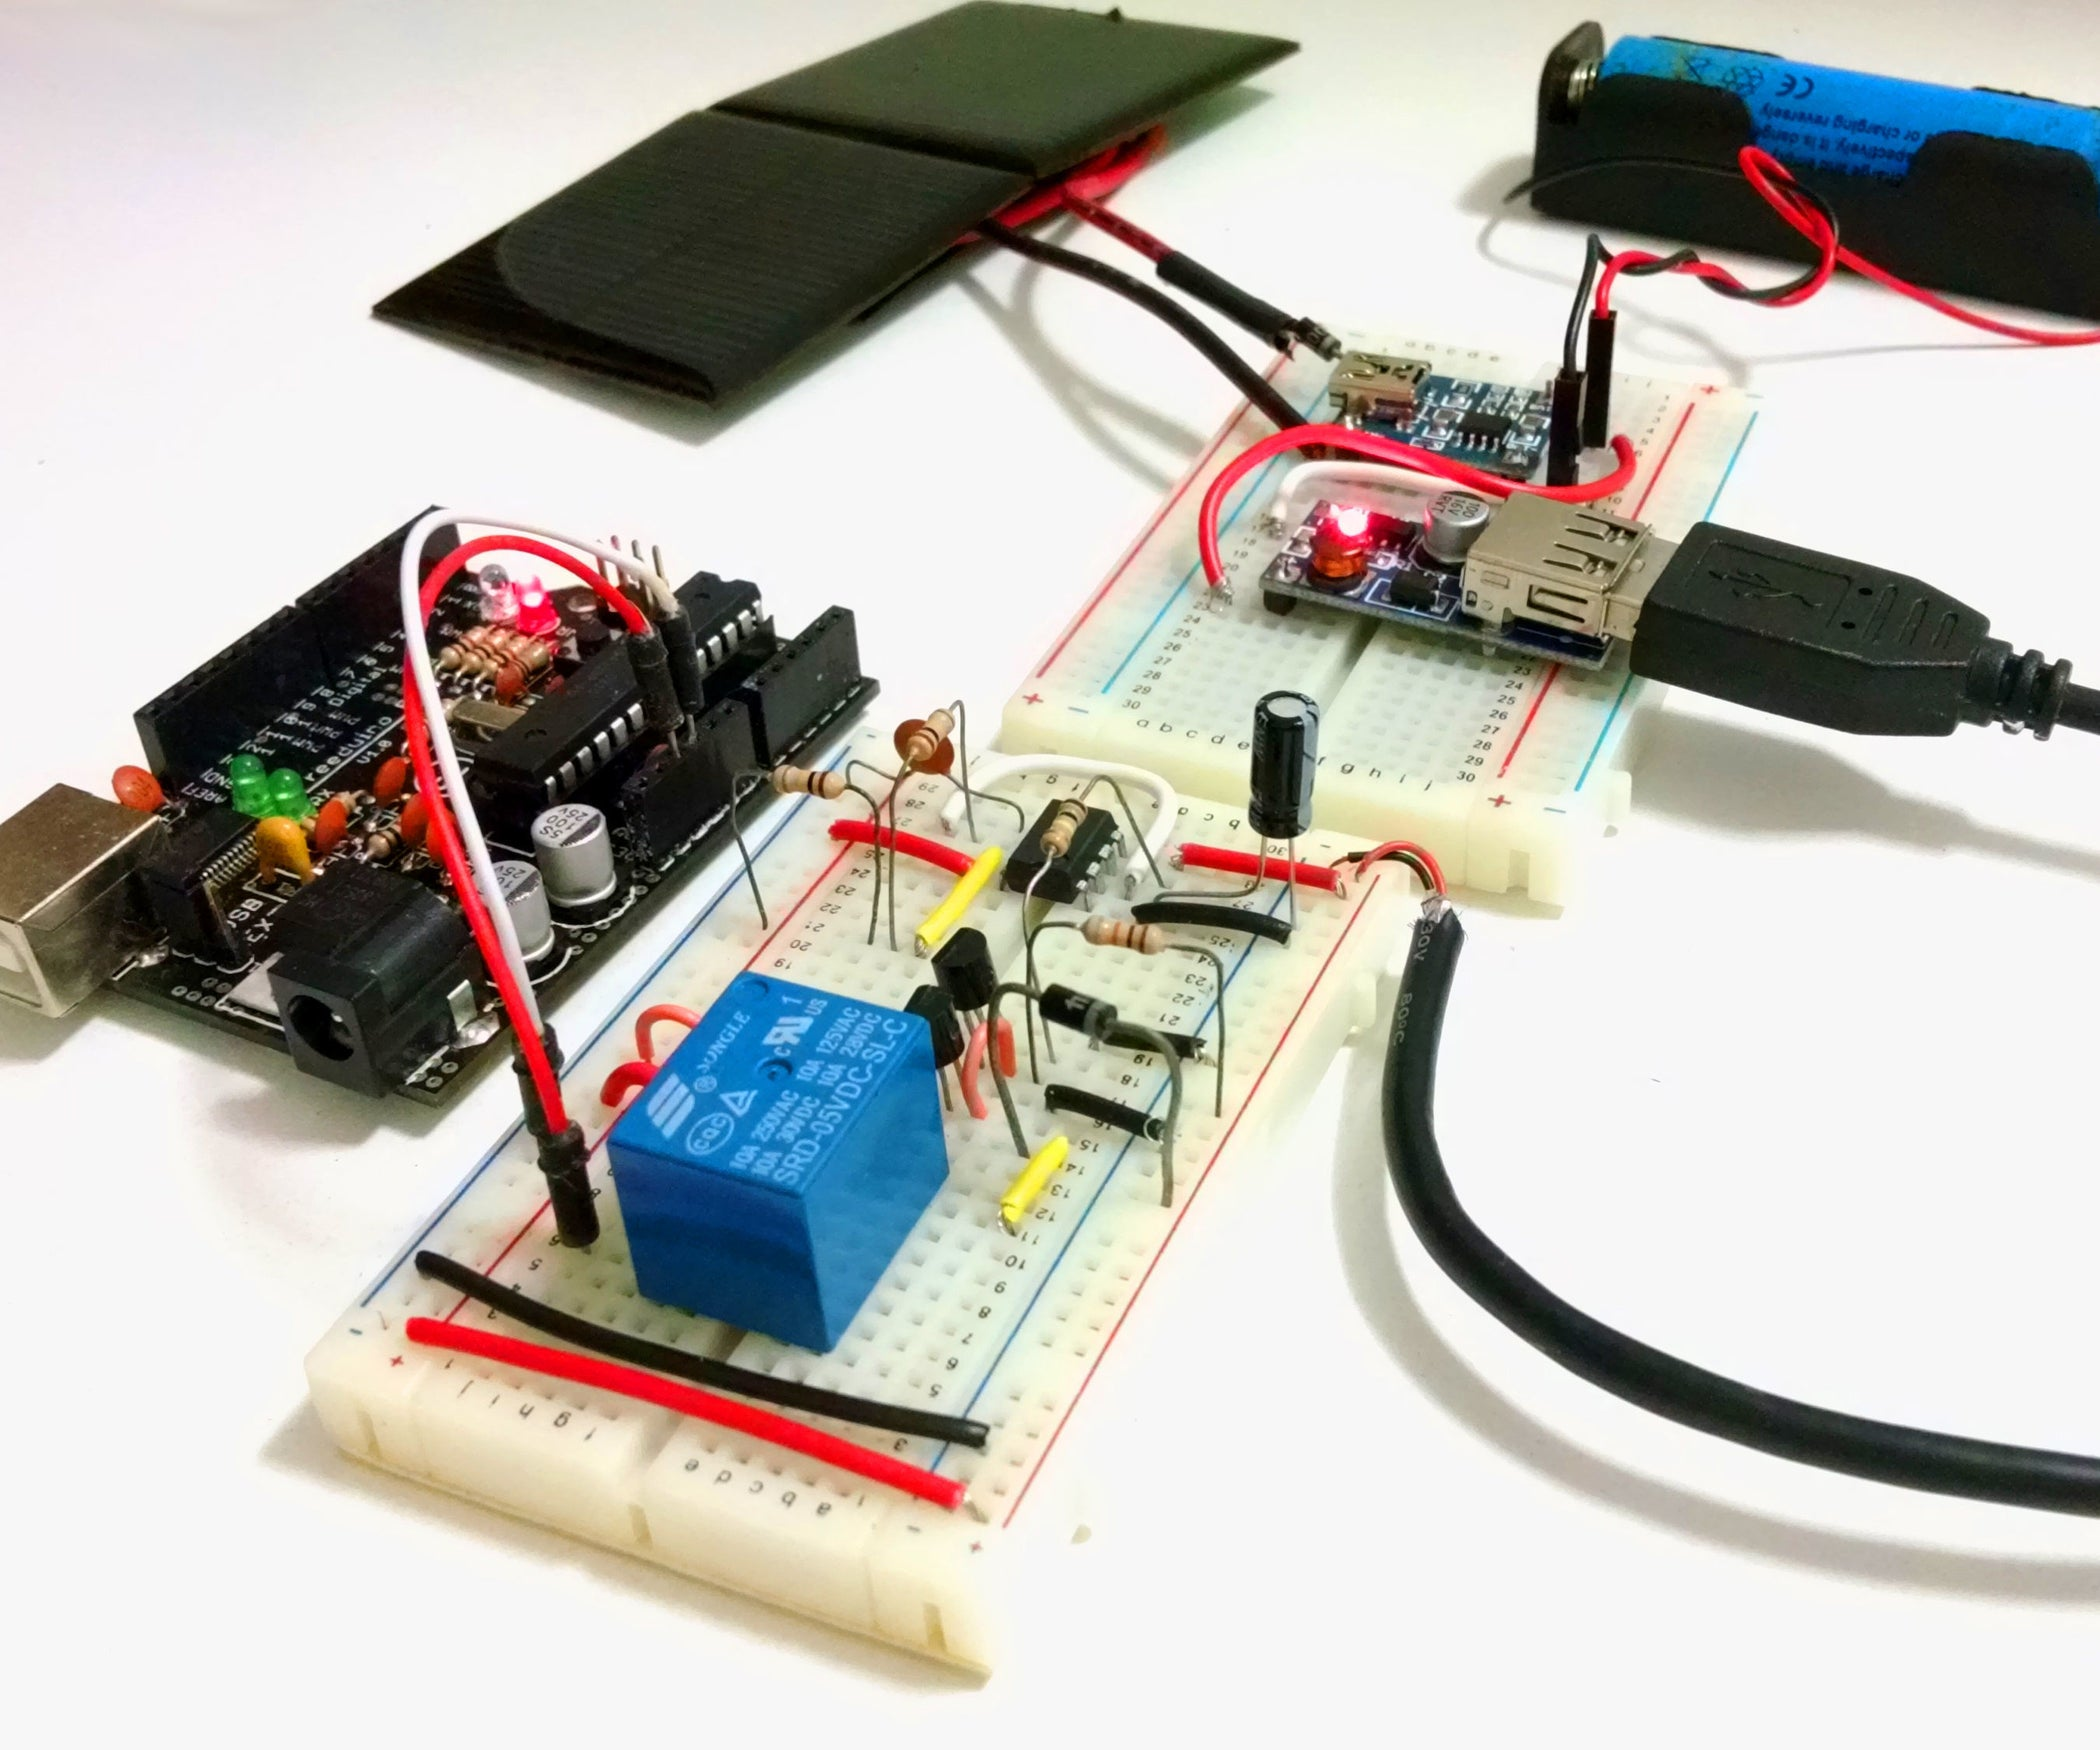 Solar Charged Battery Powered Arduino Uno 7 Steps With Pictures Low Voltage Cutoff Circuit Timer Electronic Circuits Free